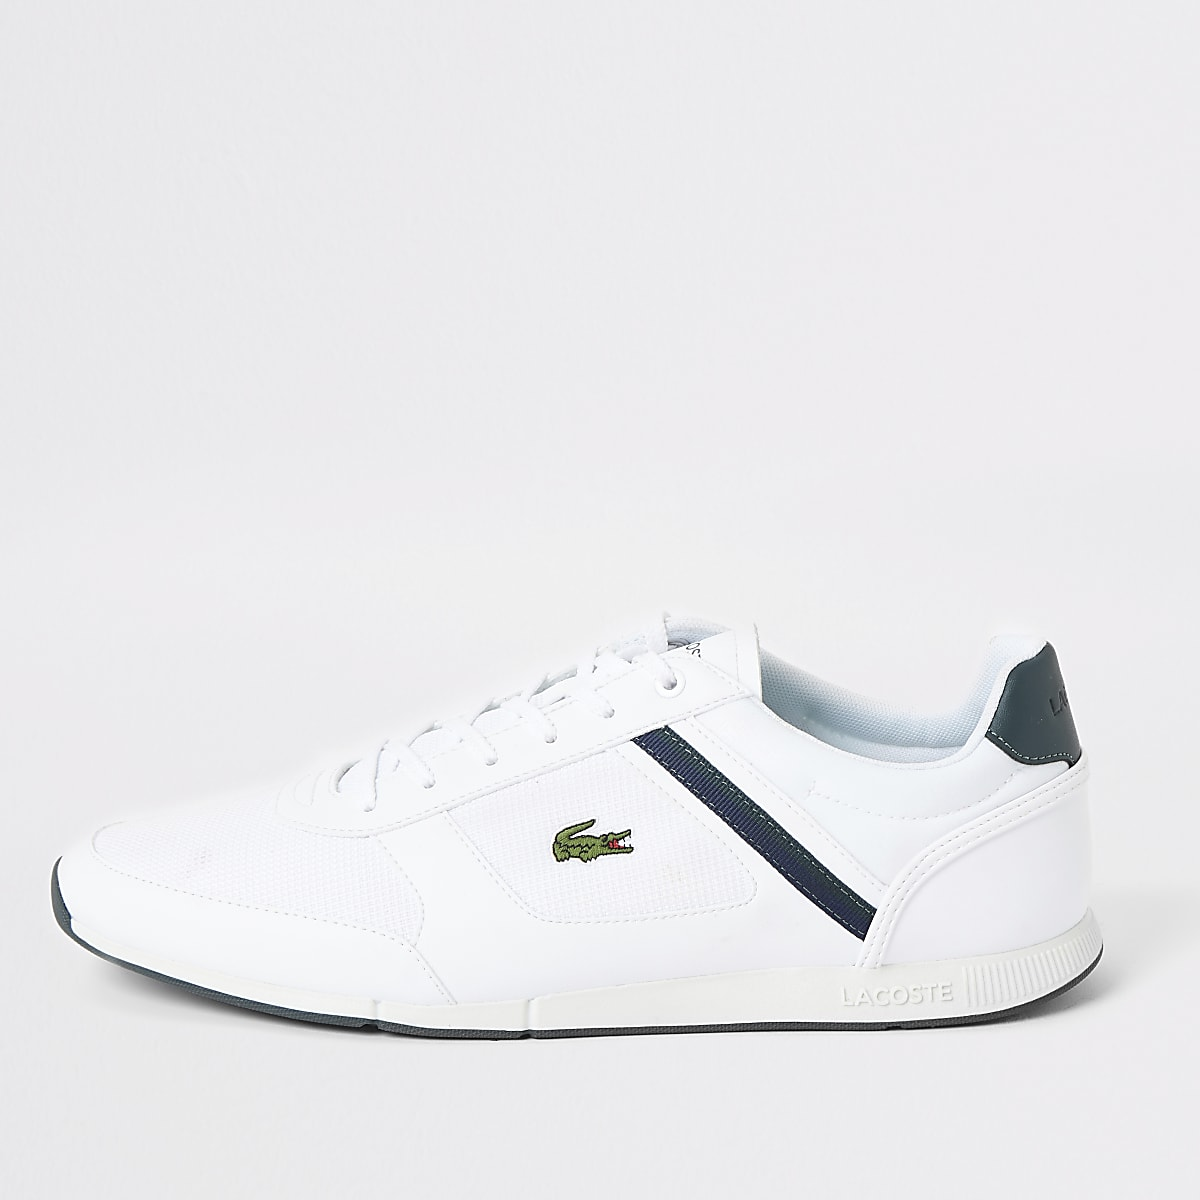 Lacoste White Lacoste Menerva Menerva Menerva Trainers Trainers Lacoste White jqzpVGLSUM